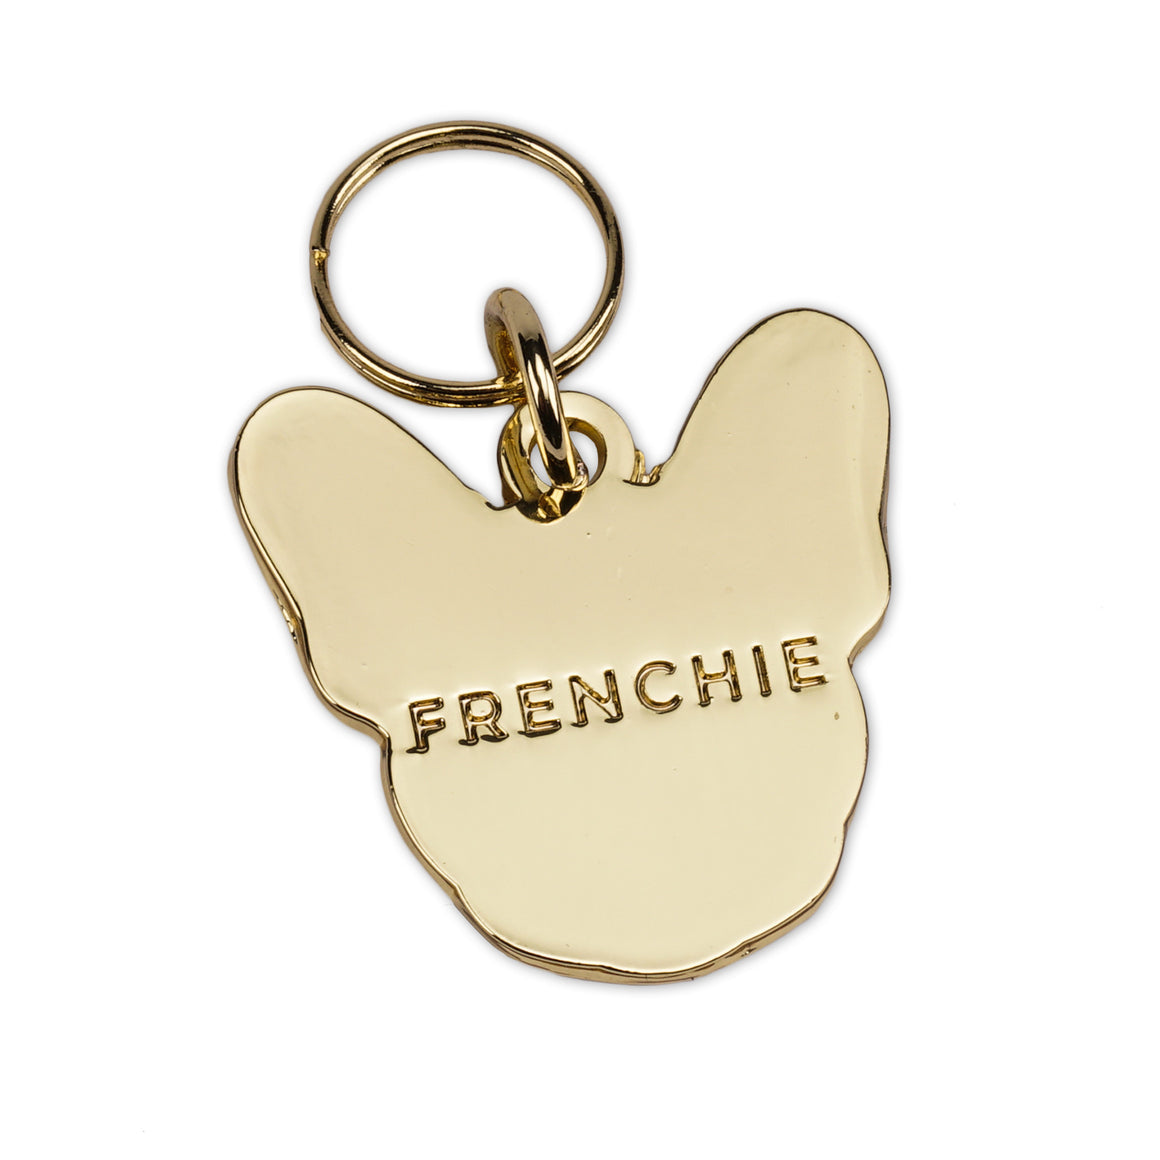 FRENCHIE ID Tag - Frenchie Bulldog - Shop Harnesses for French Bulldogs - Shop French Bulldog Harness - Harnesses for Pugs